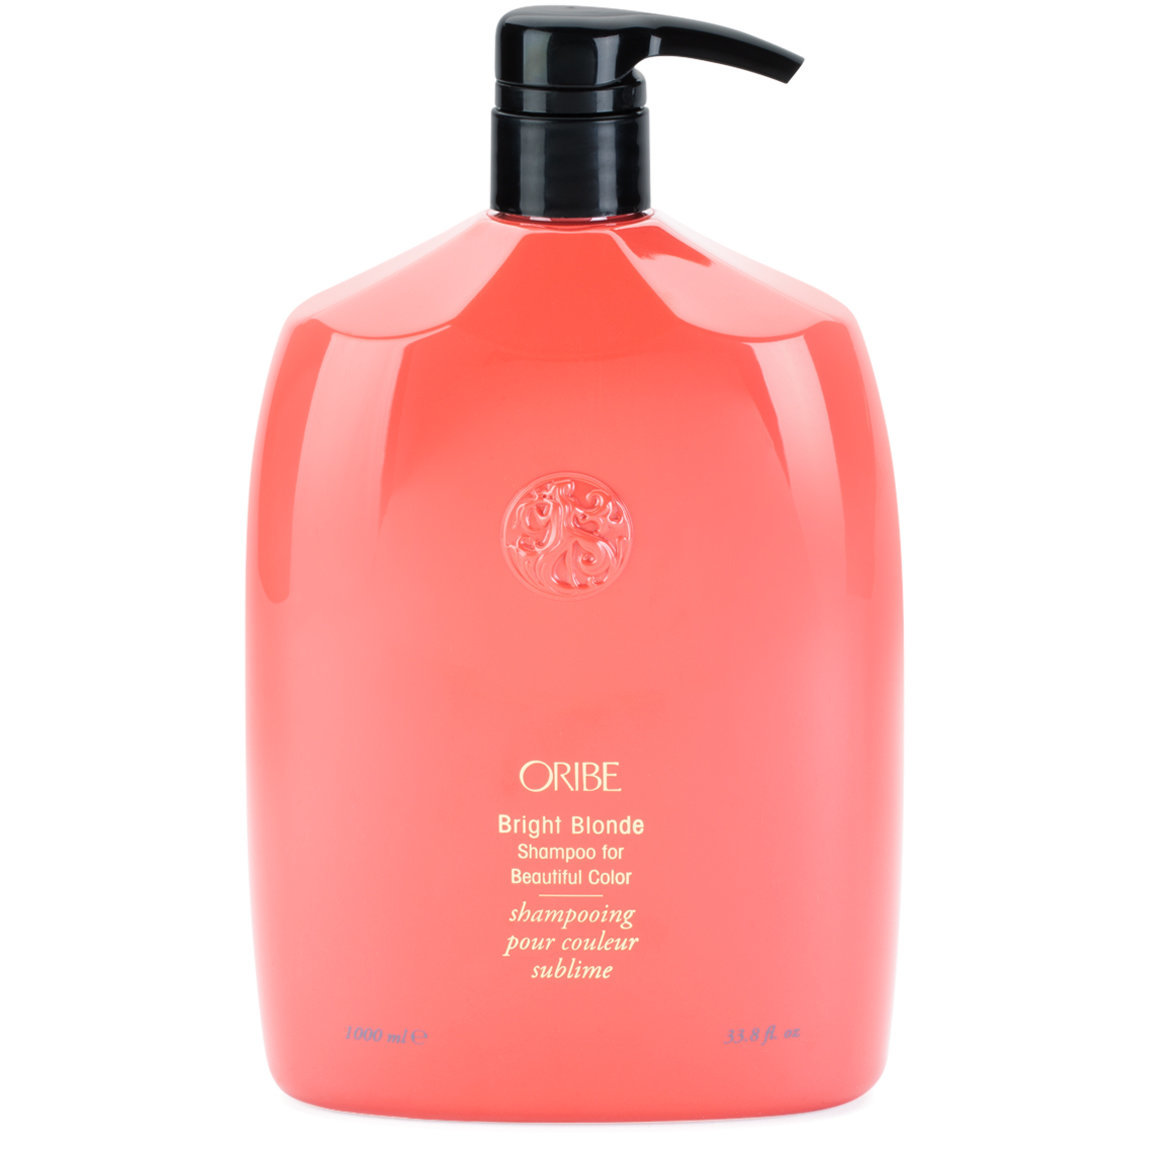 Oribe Bright Blonde Shampoo for Beautiful Color 1 L product swatch.